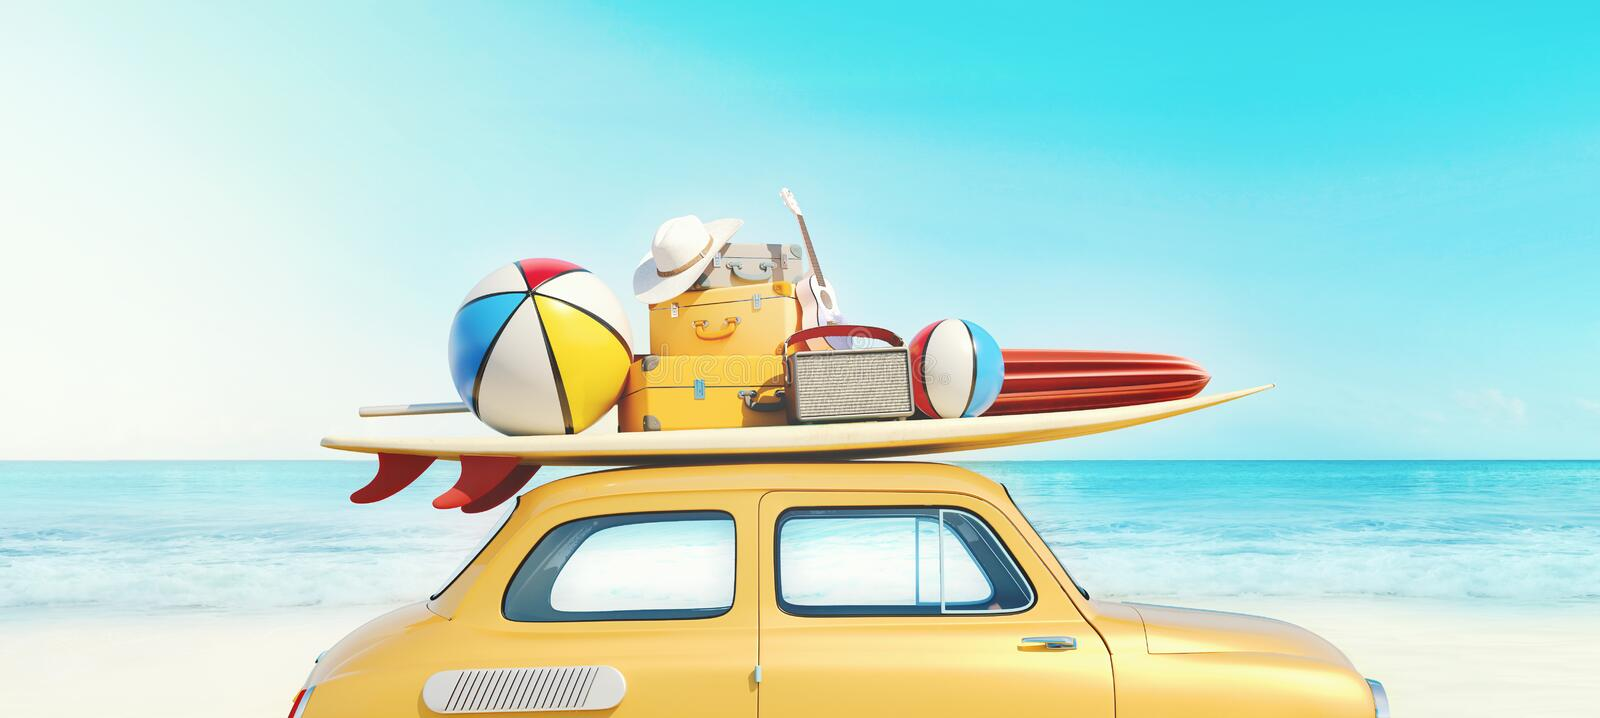 Small retro car with baggage, luggage and beach equipment on the roof, fully packed, ready for summer vacation. Concept of a road trip with family and friends stock photos